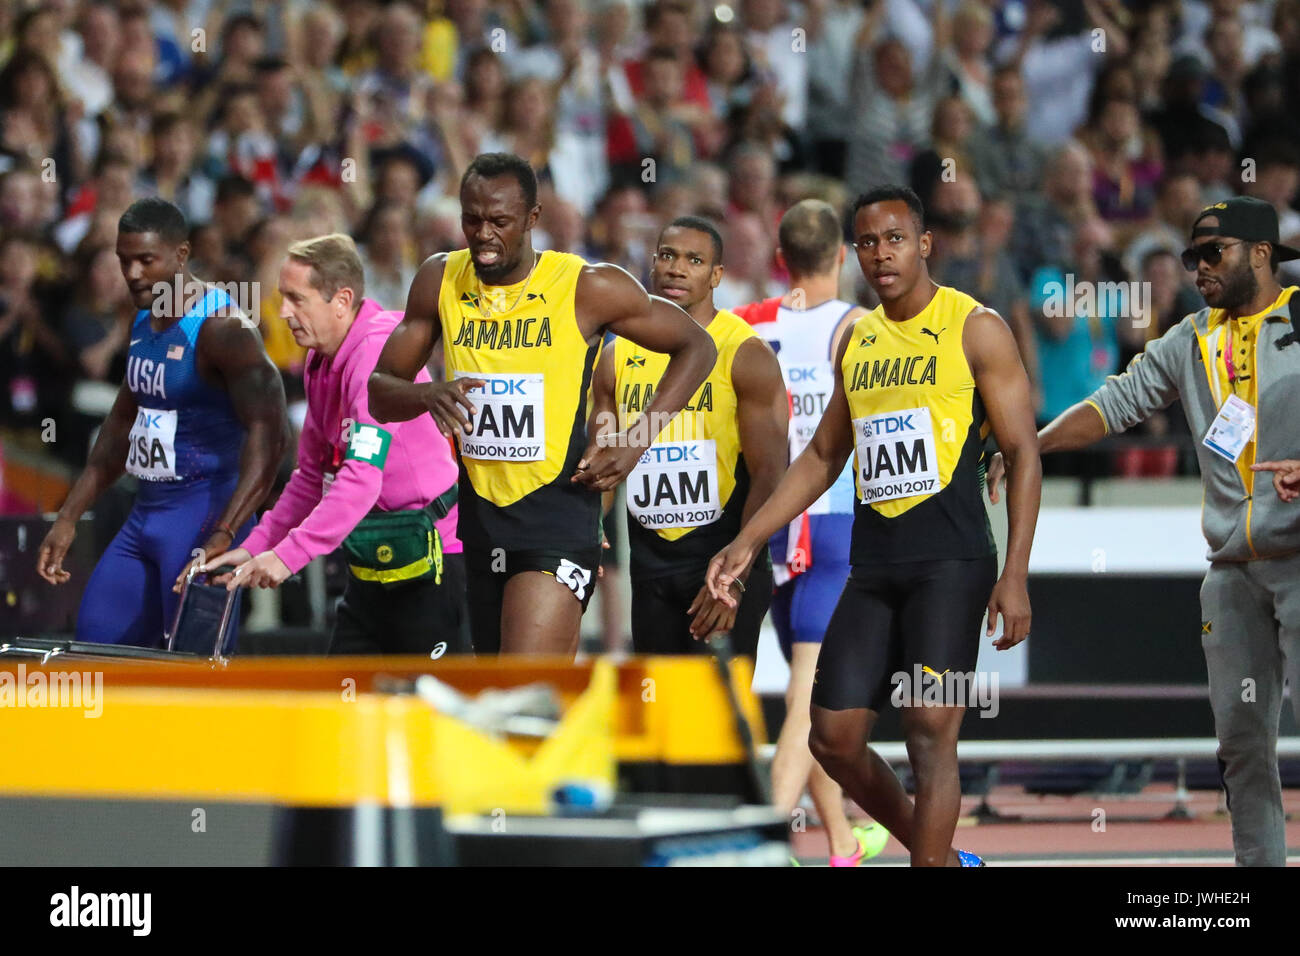 London, UK. 12th Aug, 2017. London, August 12 2017 . Usai Bolt crosses the finish line assisted by his teammates after suffering an injury to his hamstring as he ran the final 100m in the men's 4x 100m relay on day nine of the IAAF London 2017 world Championships at the London Stadium. Credit: Paul Davey/Alamy Live News - Stock Image